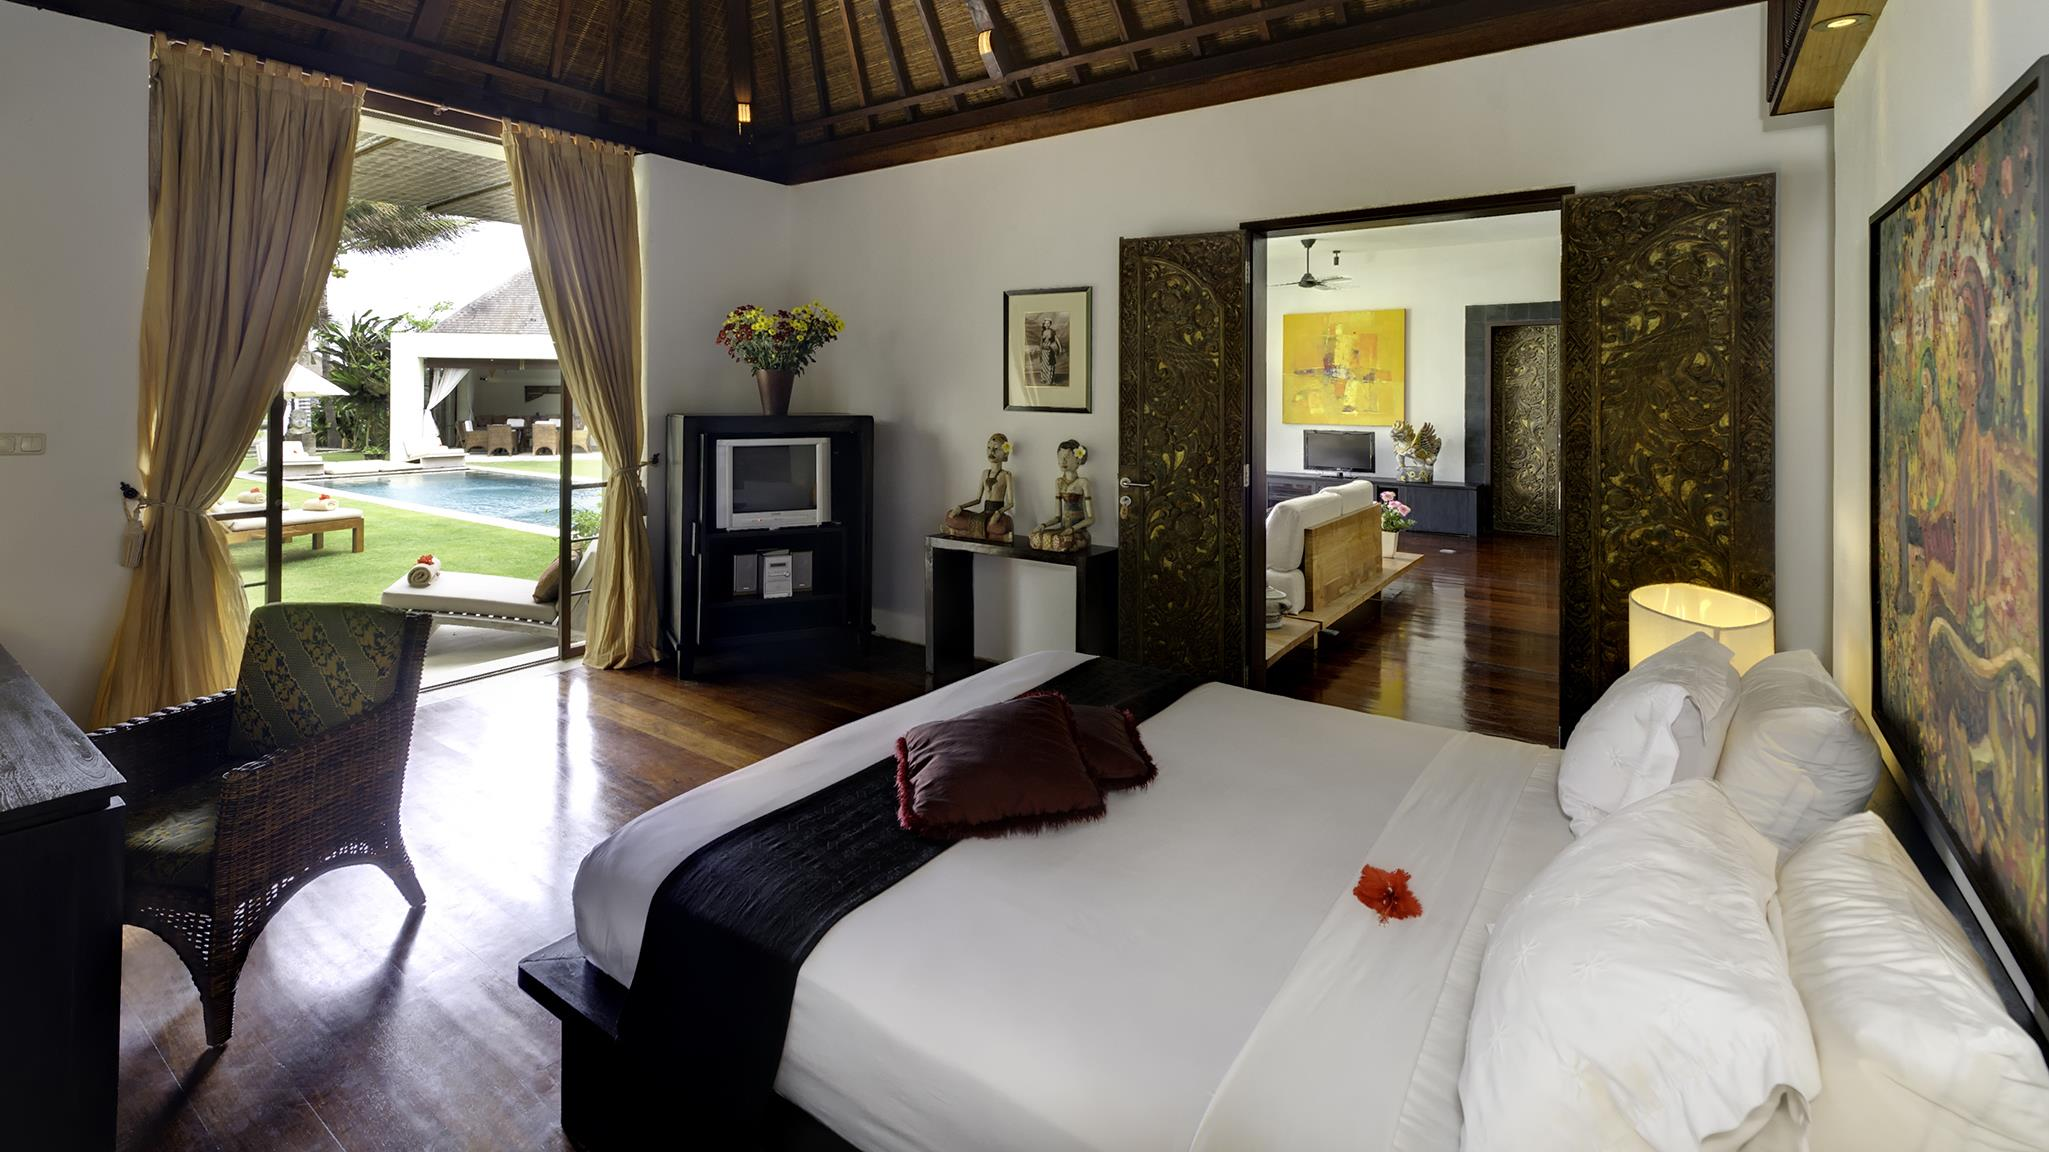 Bedroom with Study Table and TV - Majapahit Beach Villas - Sanur, Bali